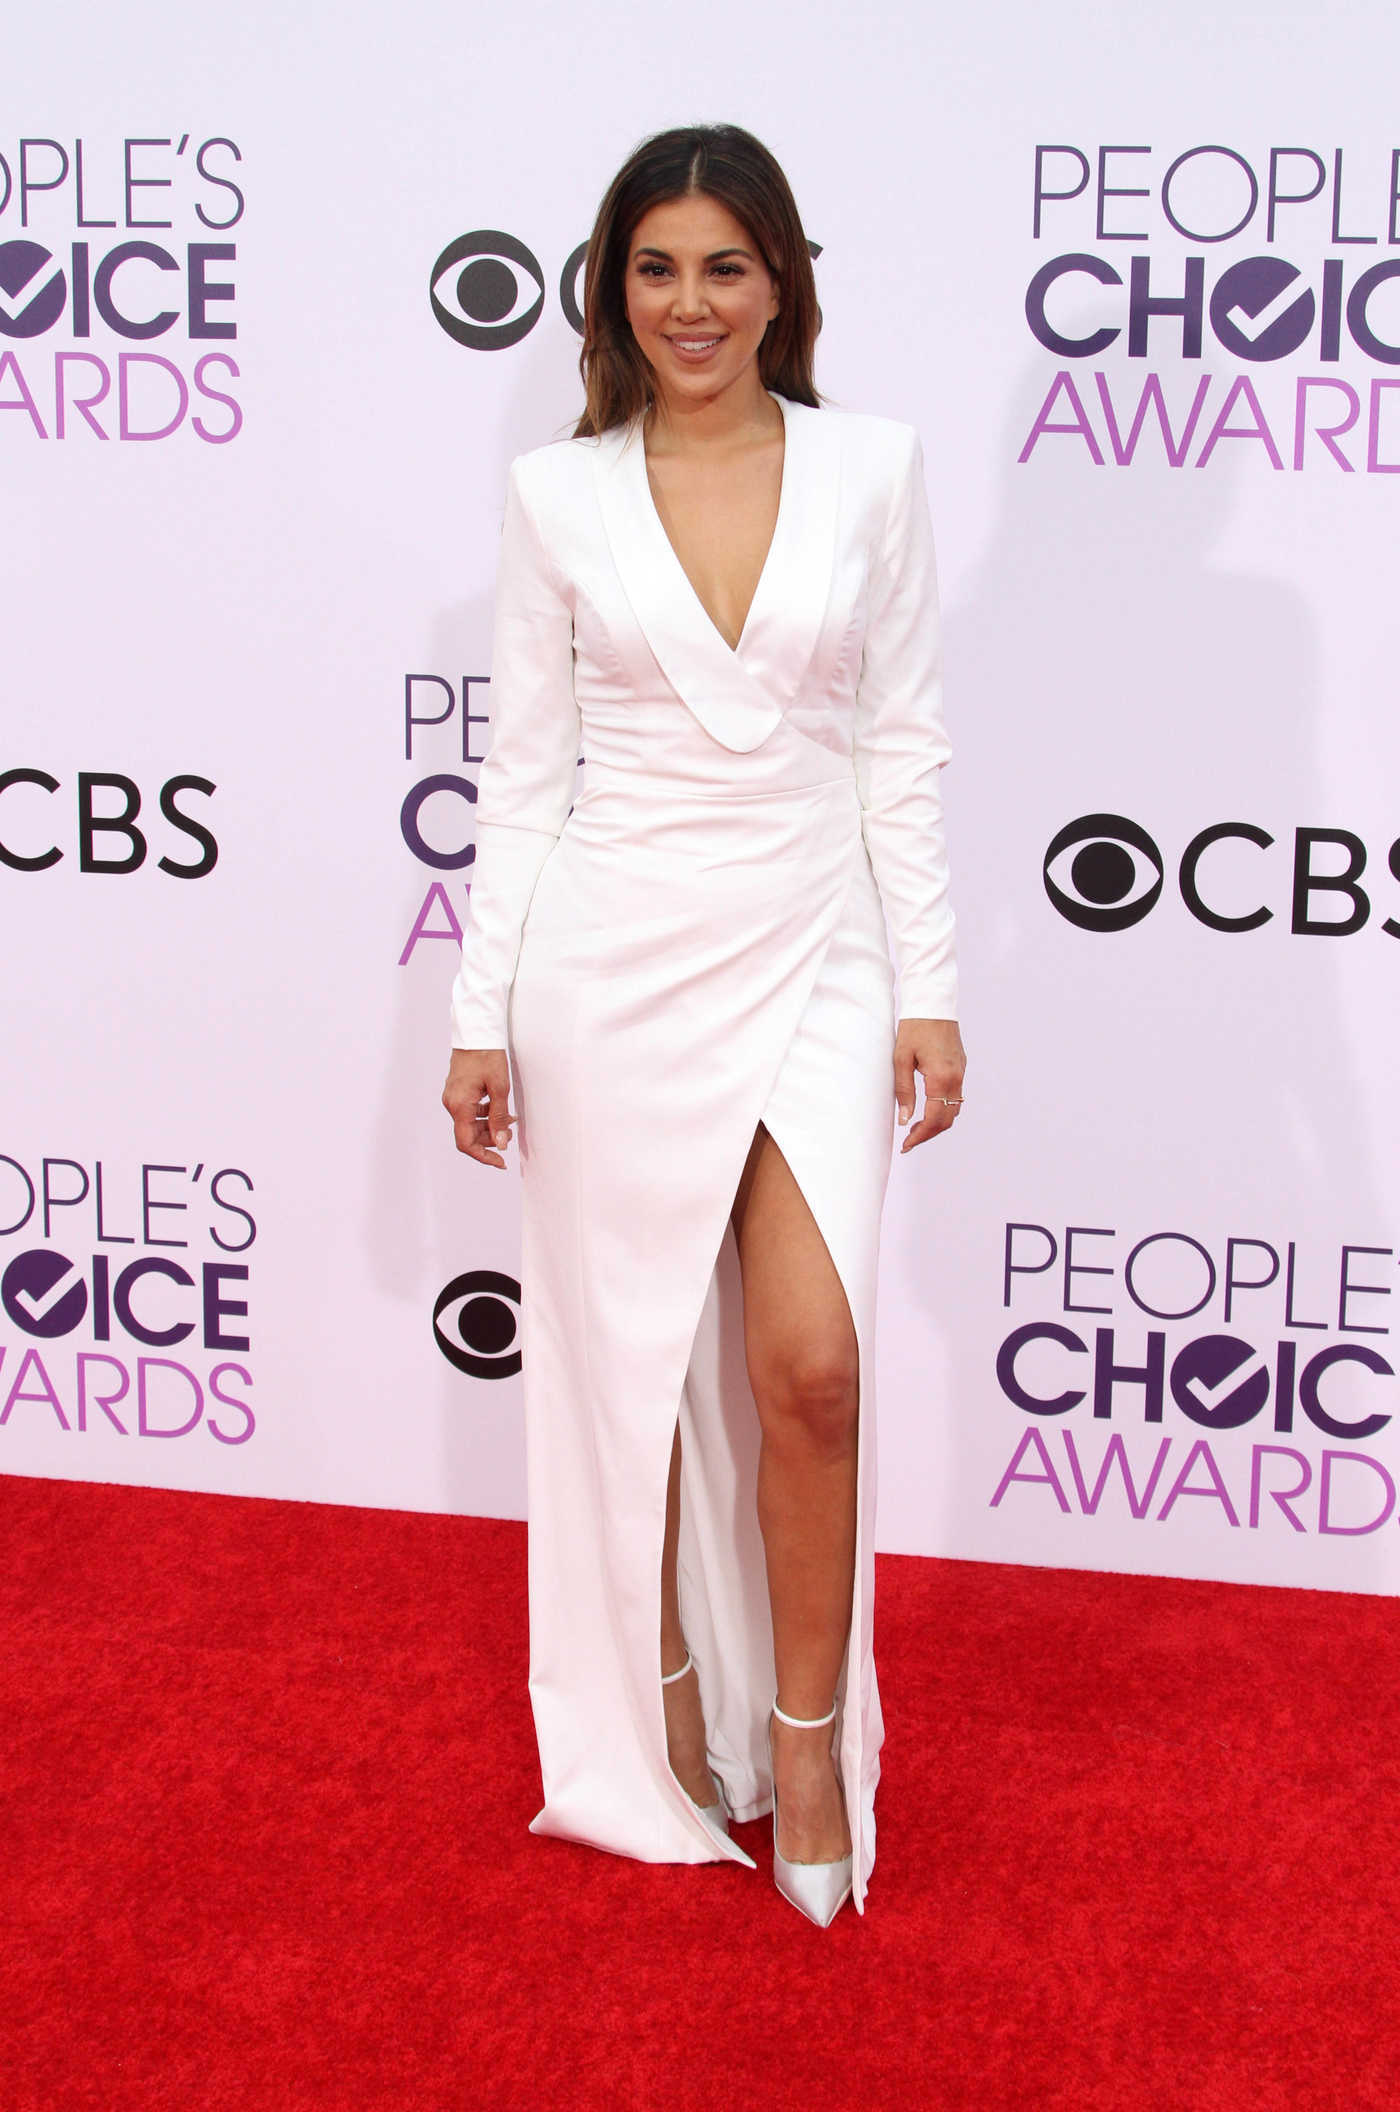 Liz Hernandez at the 43rd Annual People's Choice Awards in Los Angeles 01/18/2017